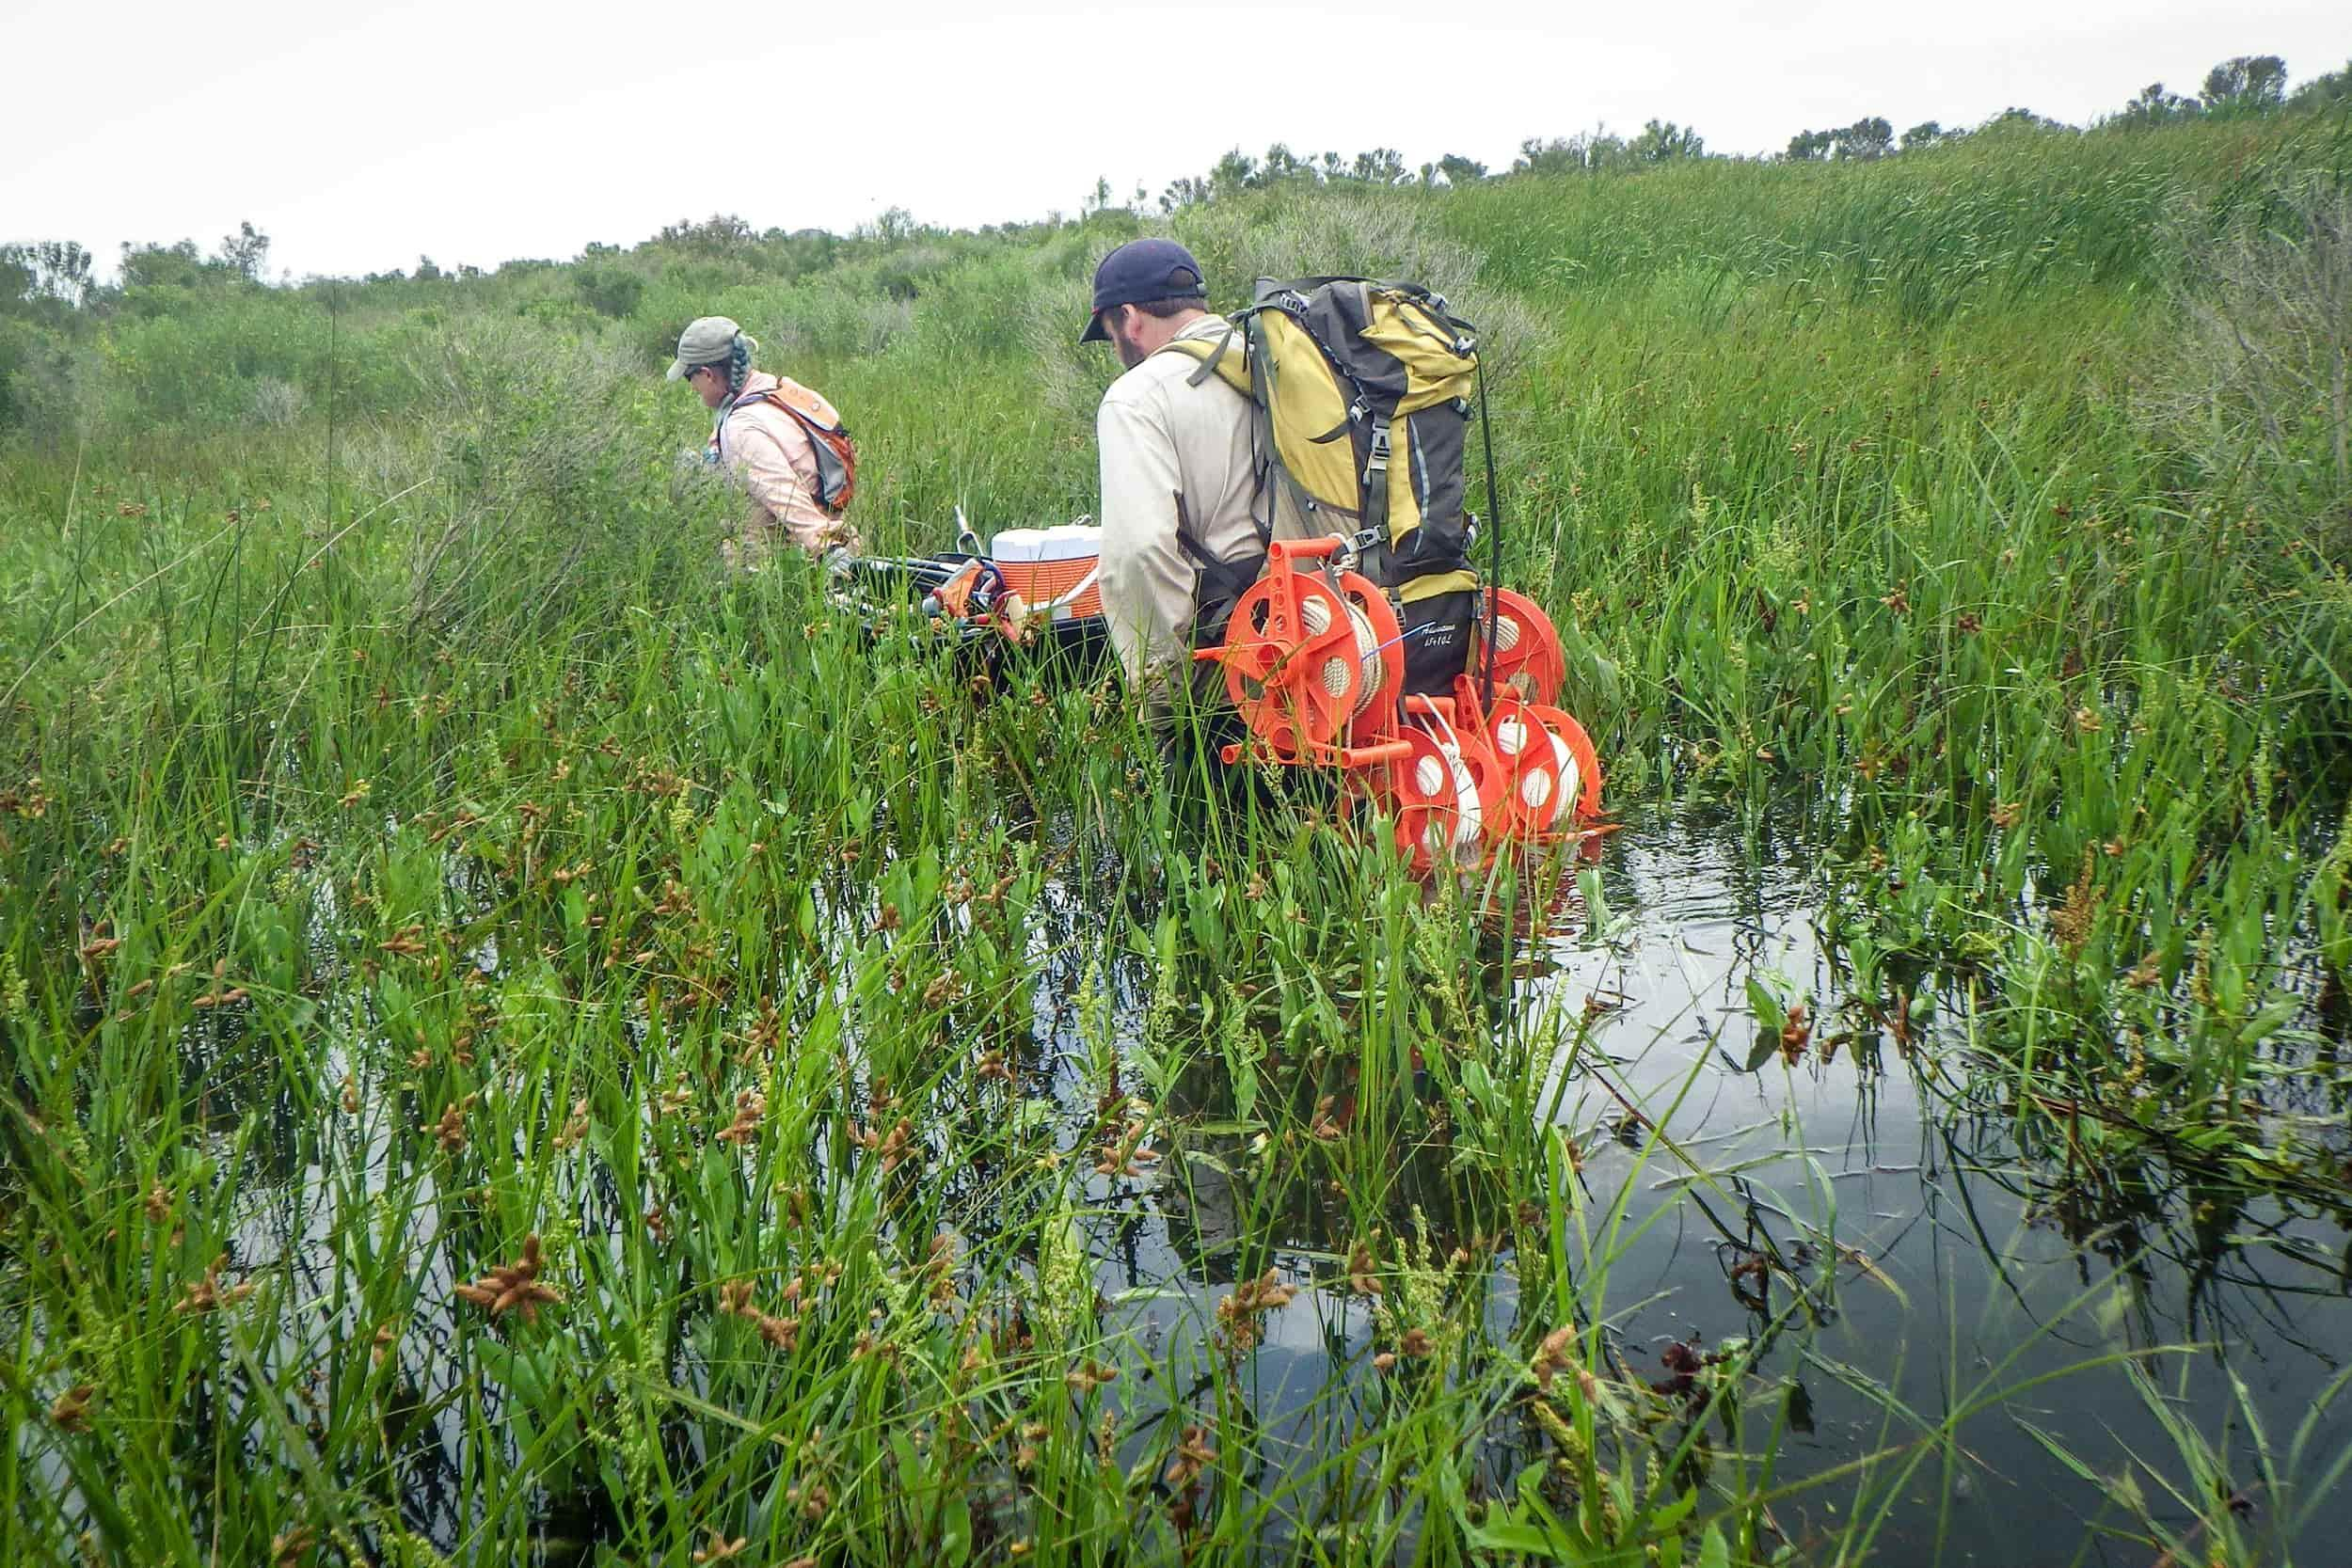 Mandi Gordon, research associate, and James Roundtree, wetland technician, traverse the flooded landscape of a NWCA site in Galveston County, Texas